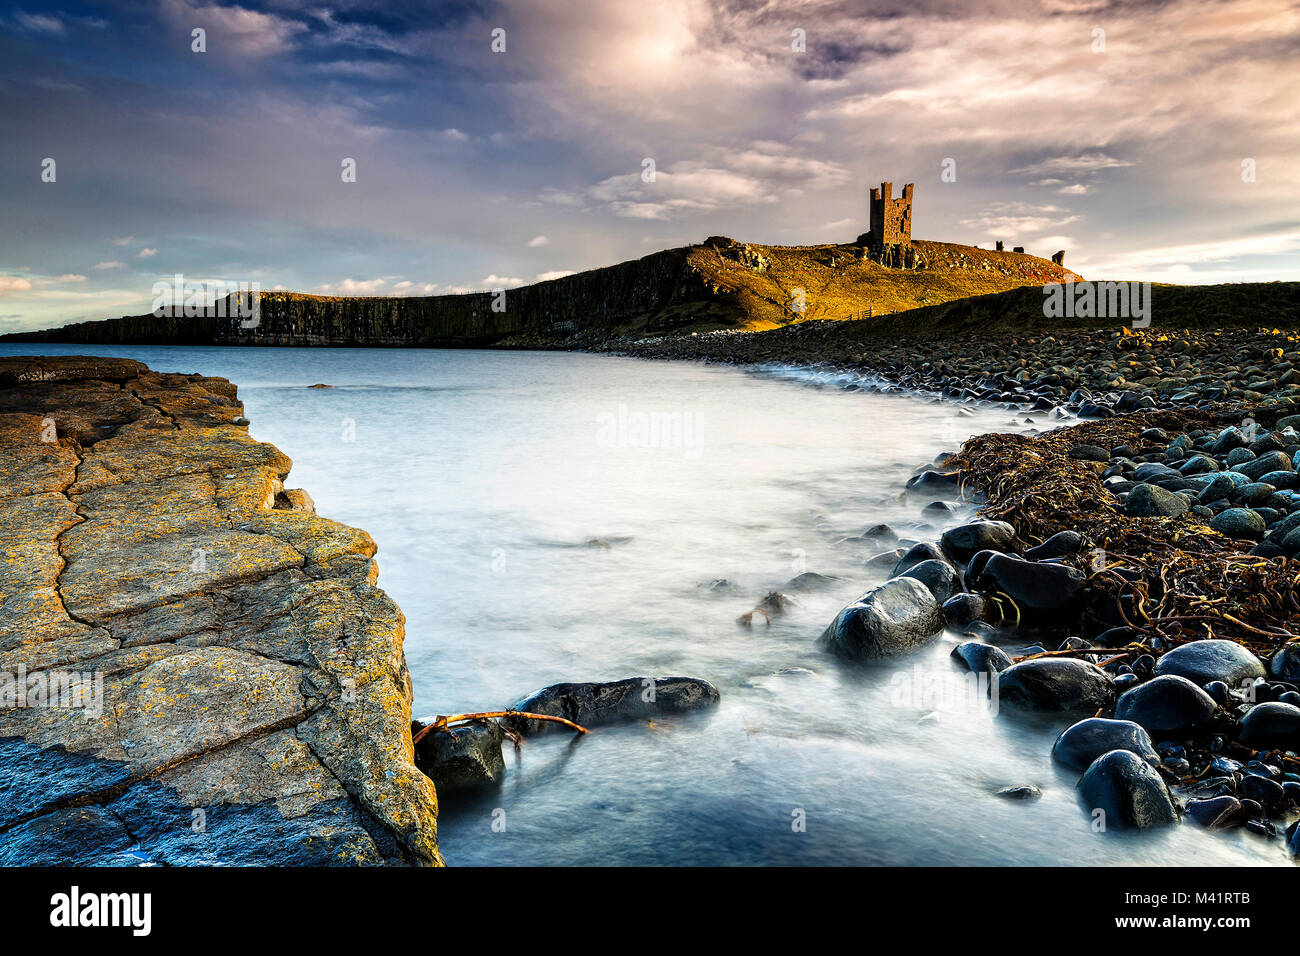 A photograph of Dunstanburgh Castle in Northumberland. Stock Photo